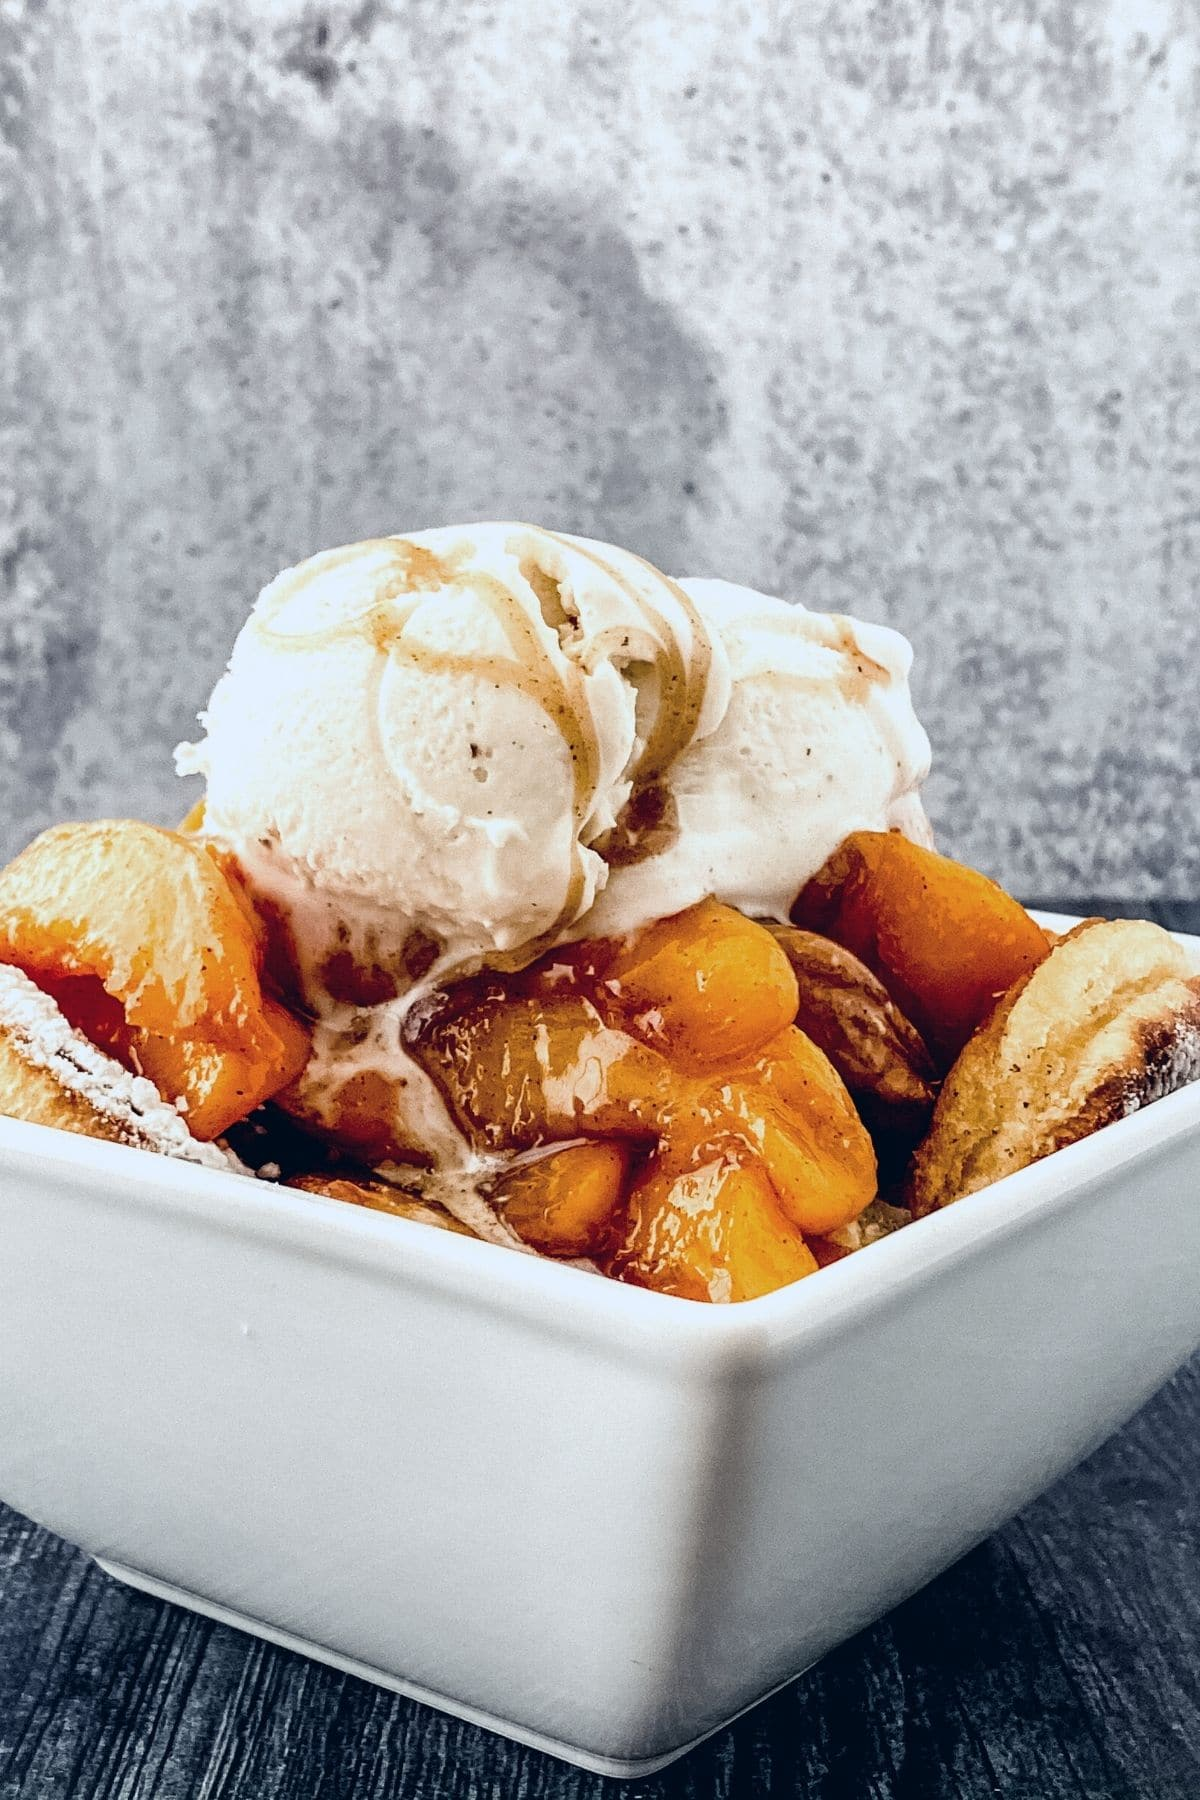 White square bowl with peach cobbler and ice cream on gray counter